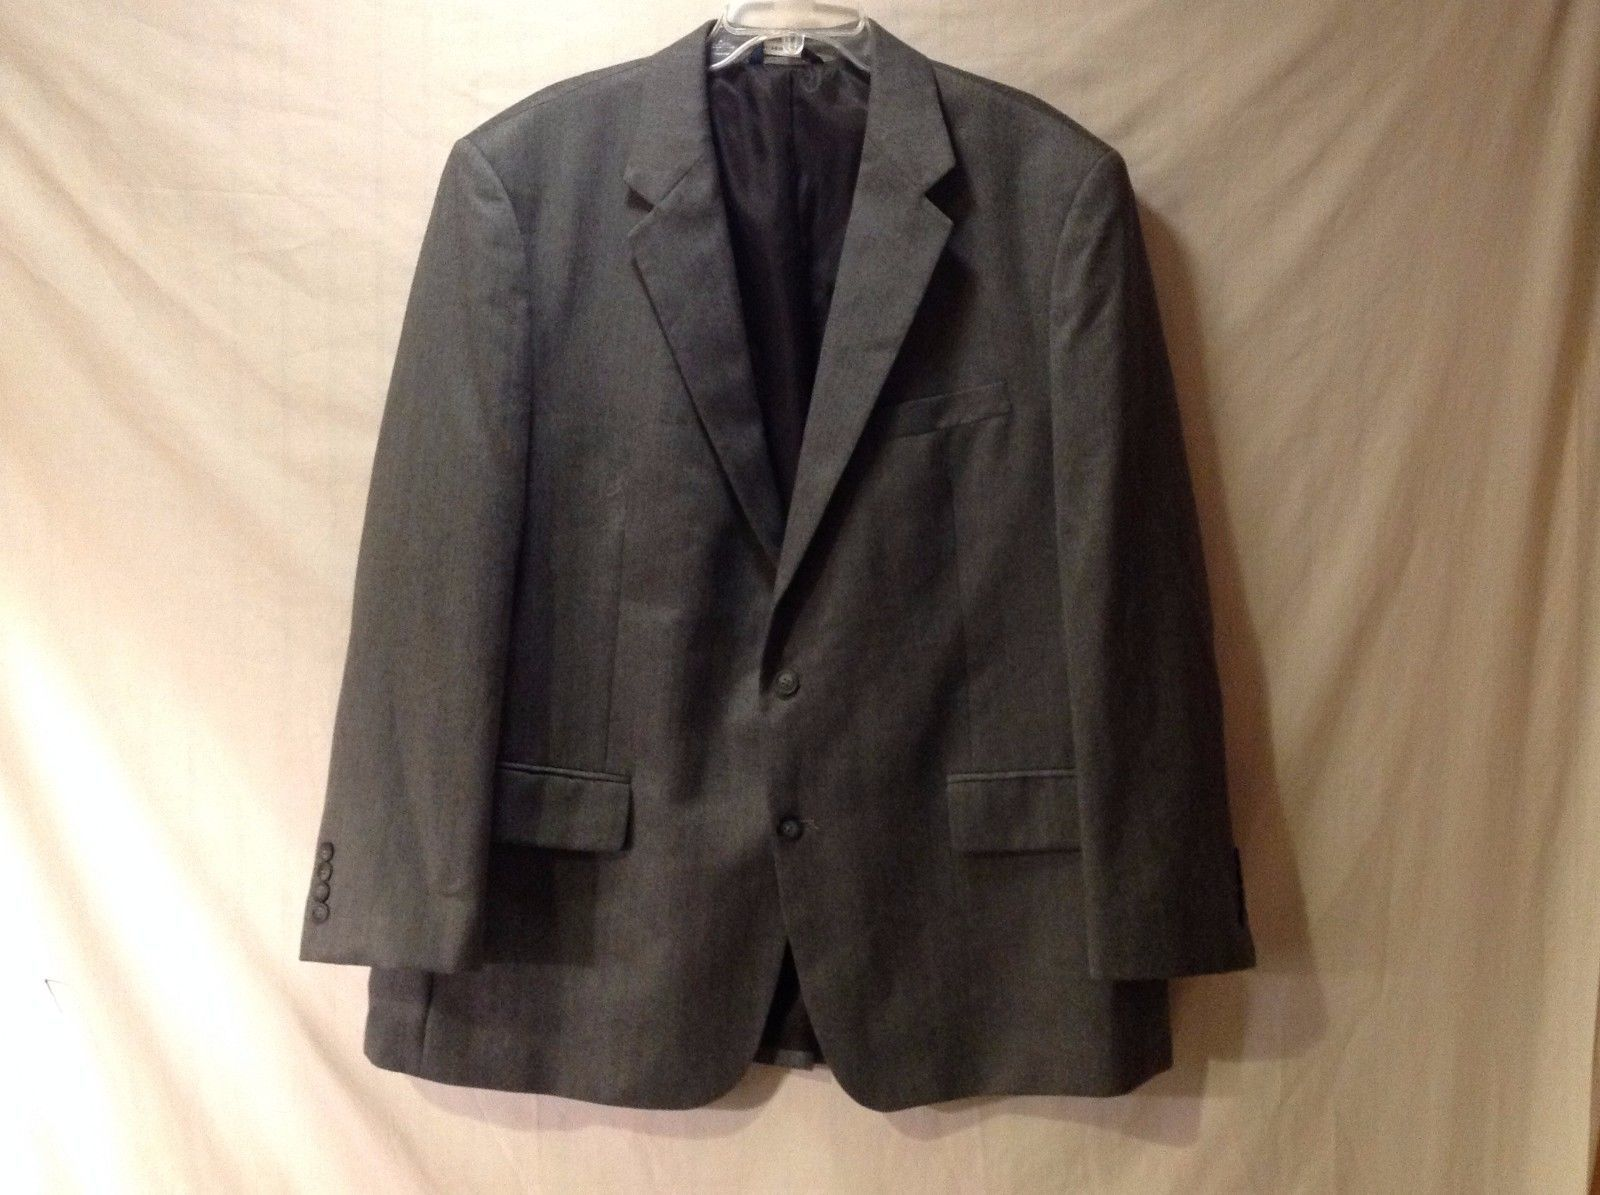 Men's Croft & Barrow Dress Jacket Sports Coat Gray Fully Lined Excellent Used